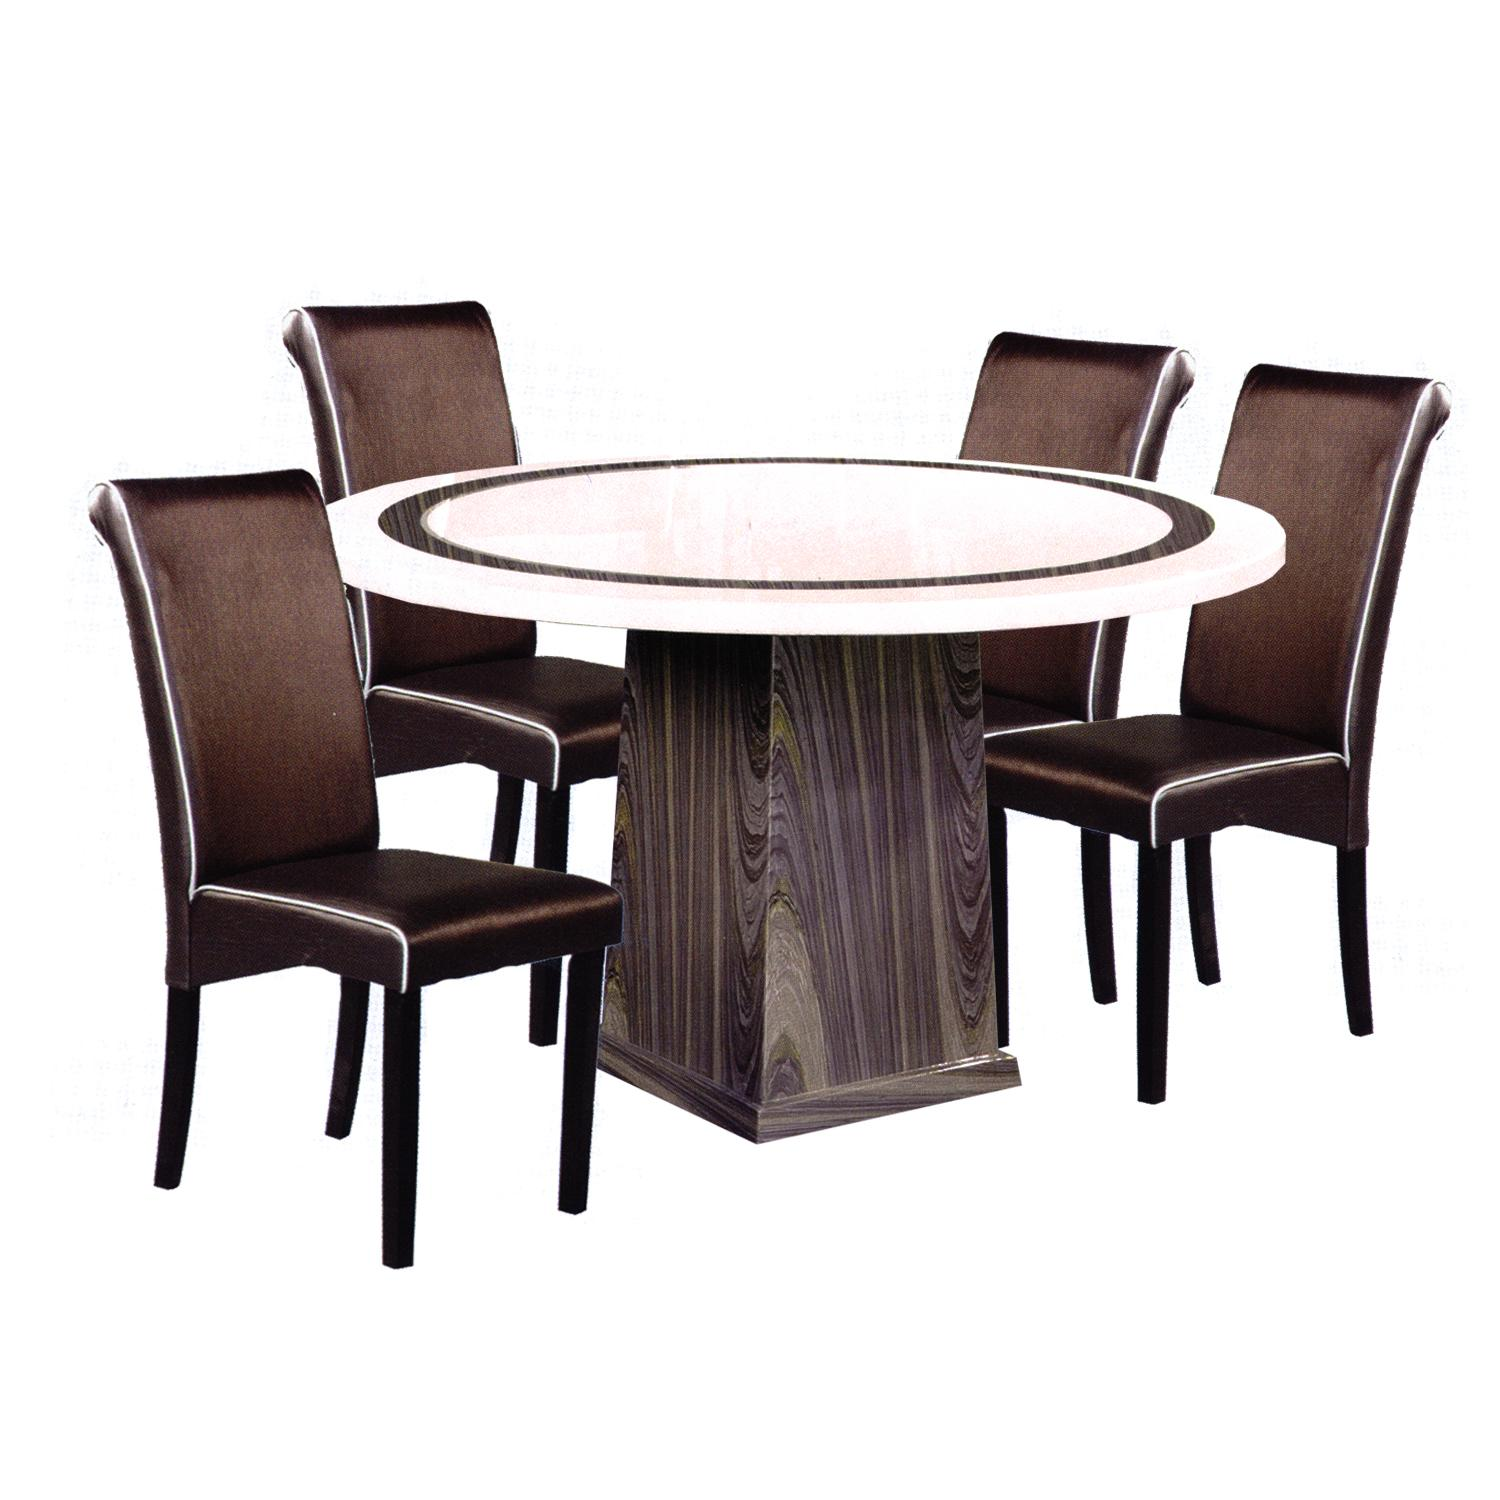 SORA / FLANN Marble Top 1+6 Dining Set